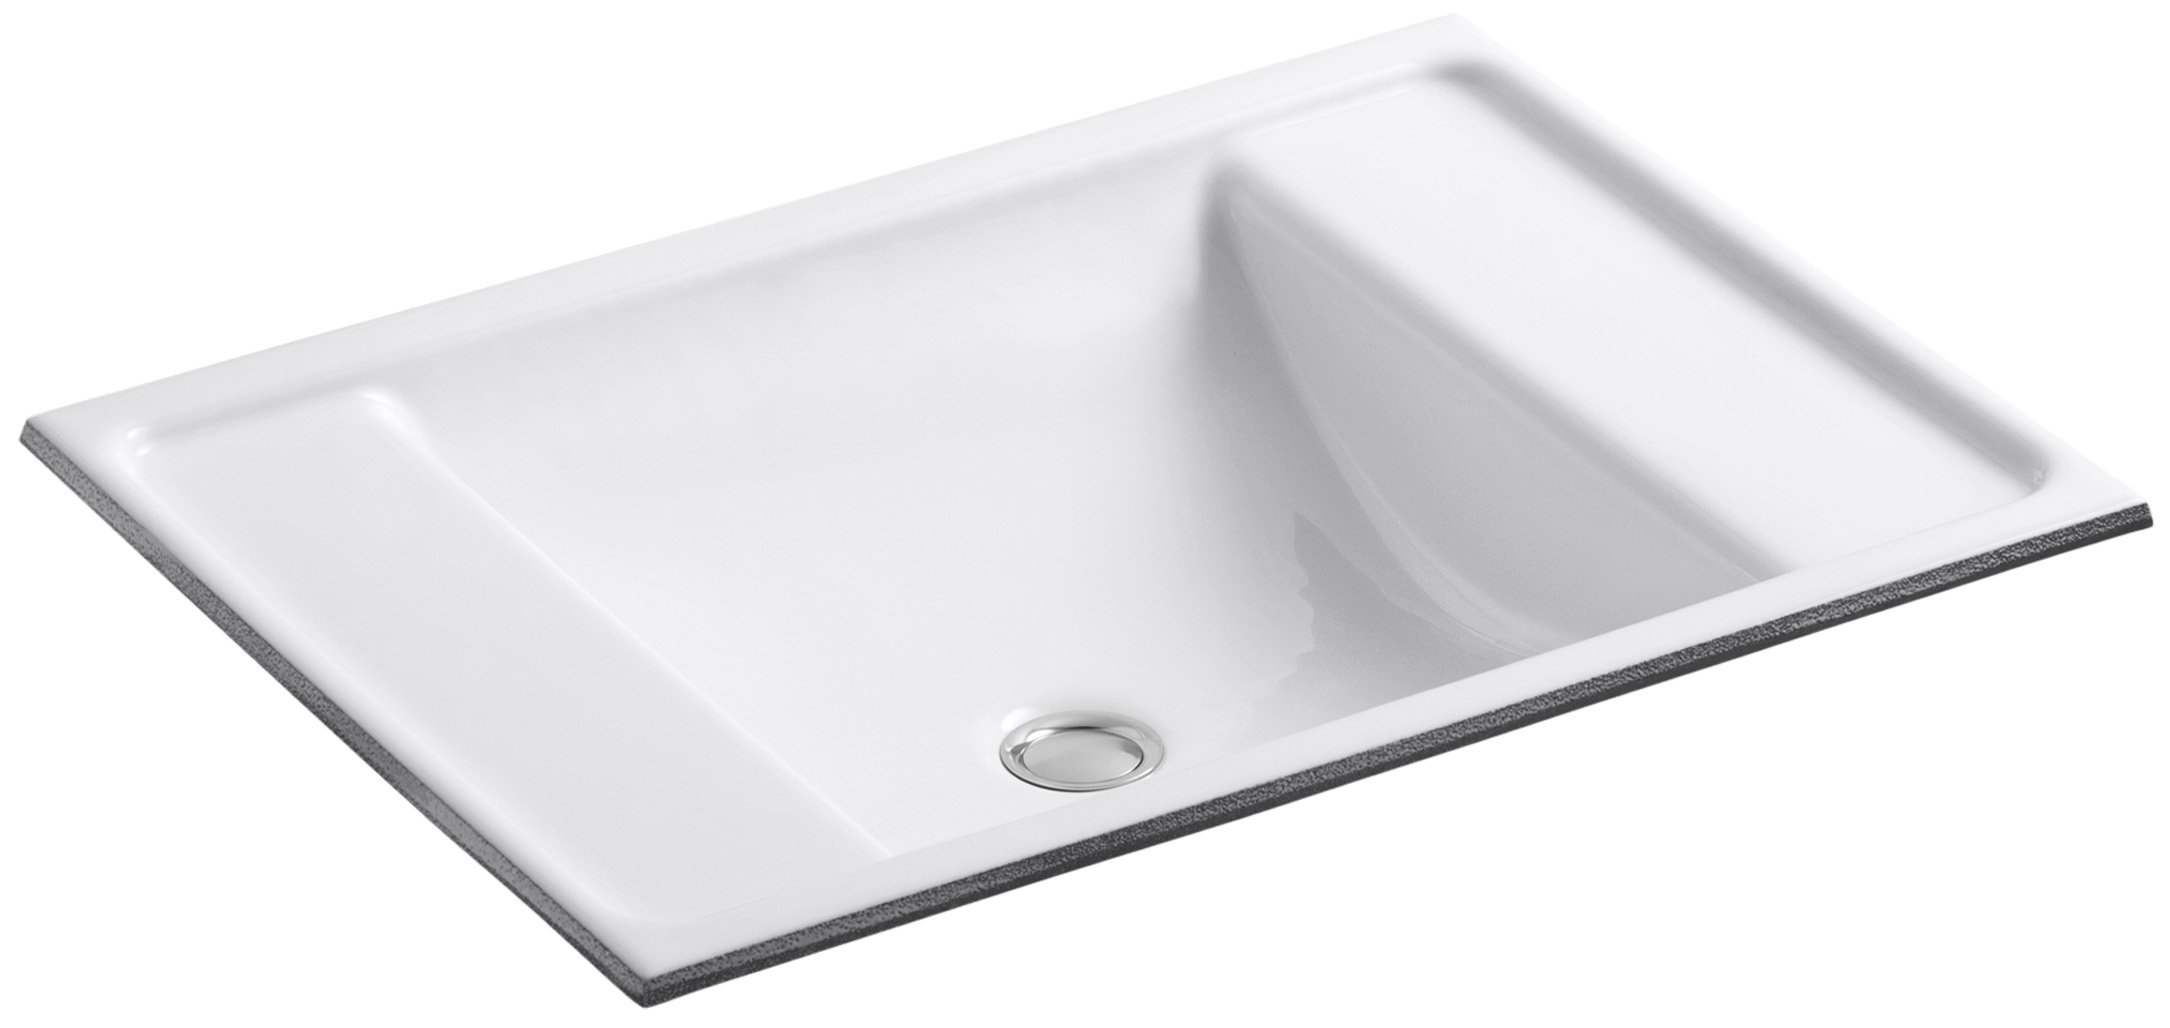 KOHLER K-2838-0 Ledges Undercounter Bathroom Sink, White by Kohler